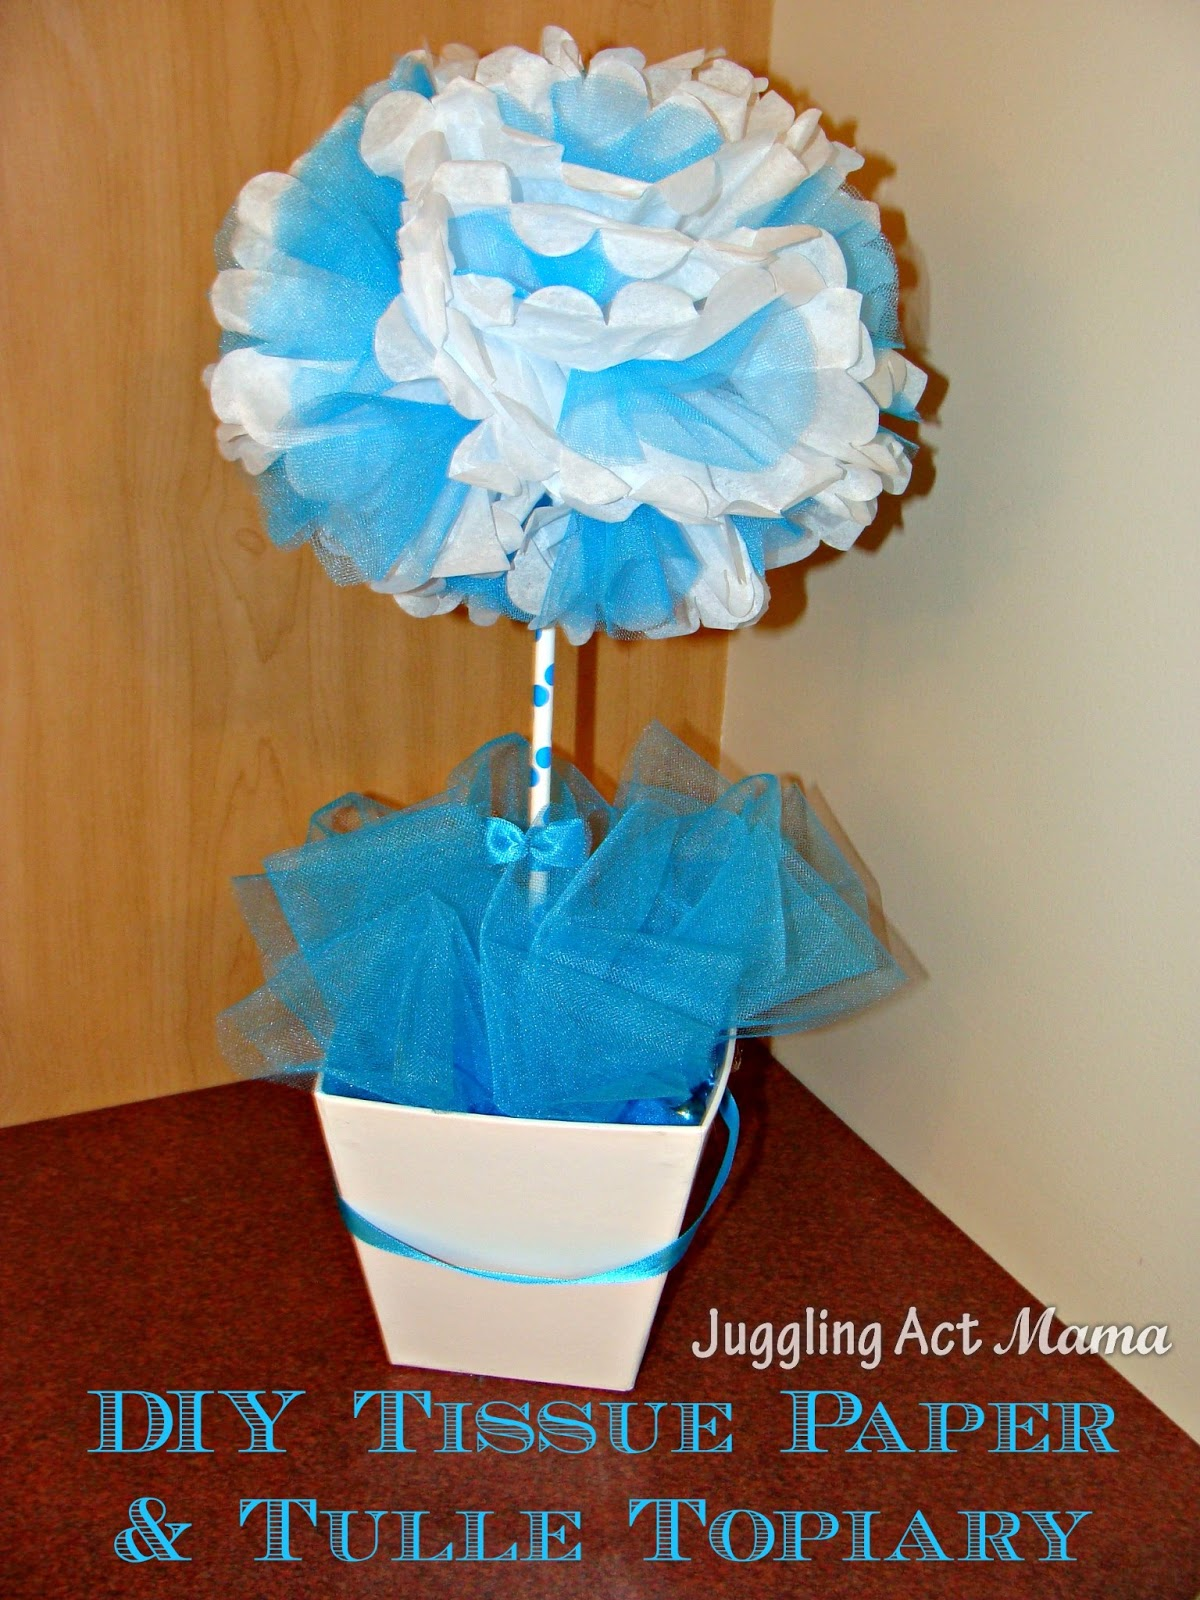 Diy tissue paper tulle topiary juggling act mama diy tissue paper tulle topiary mightylinksfo